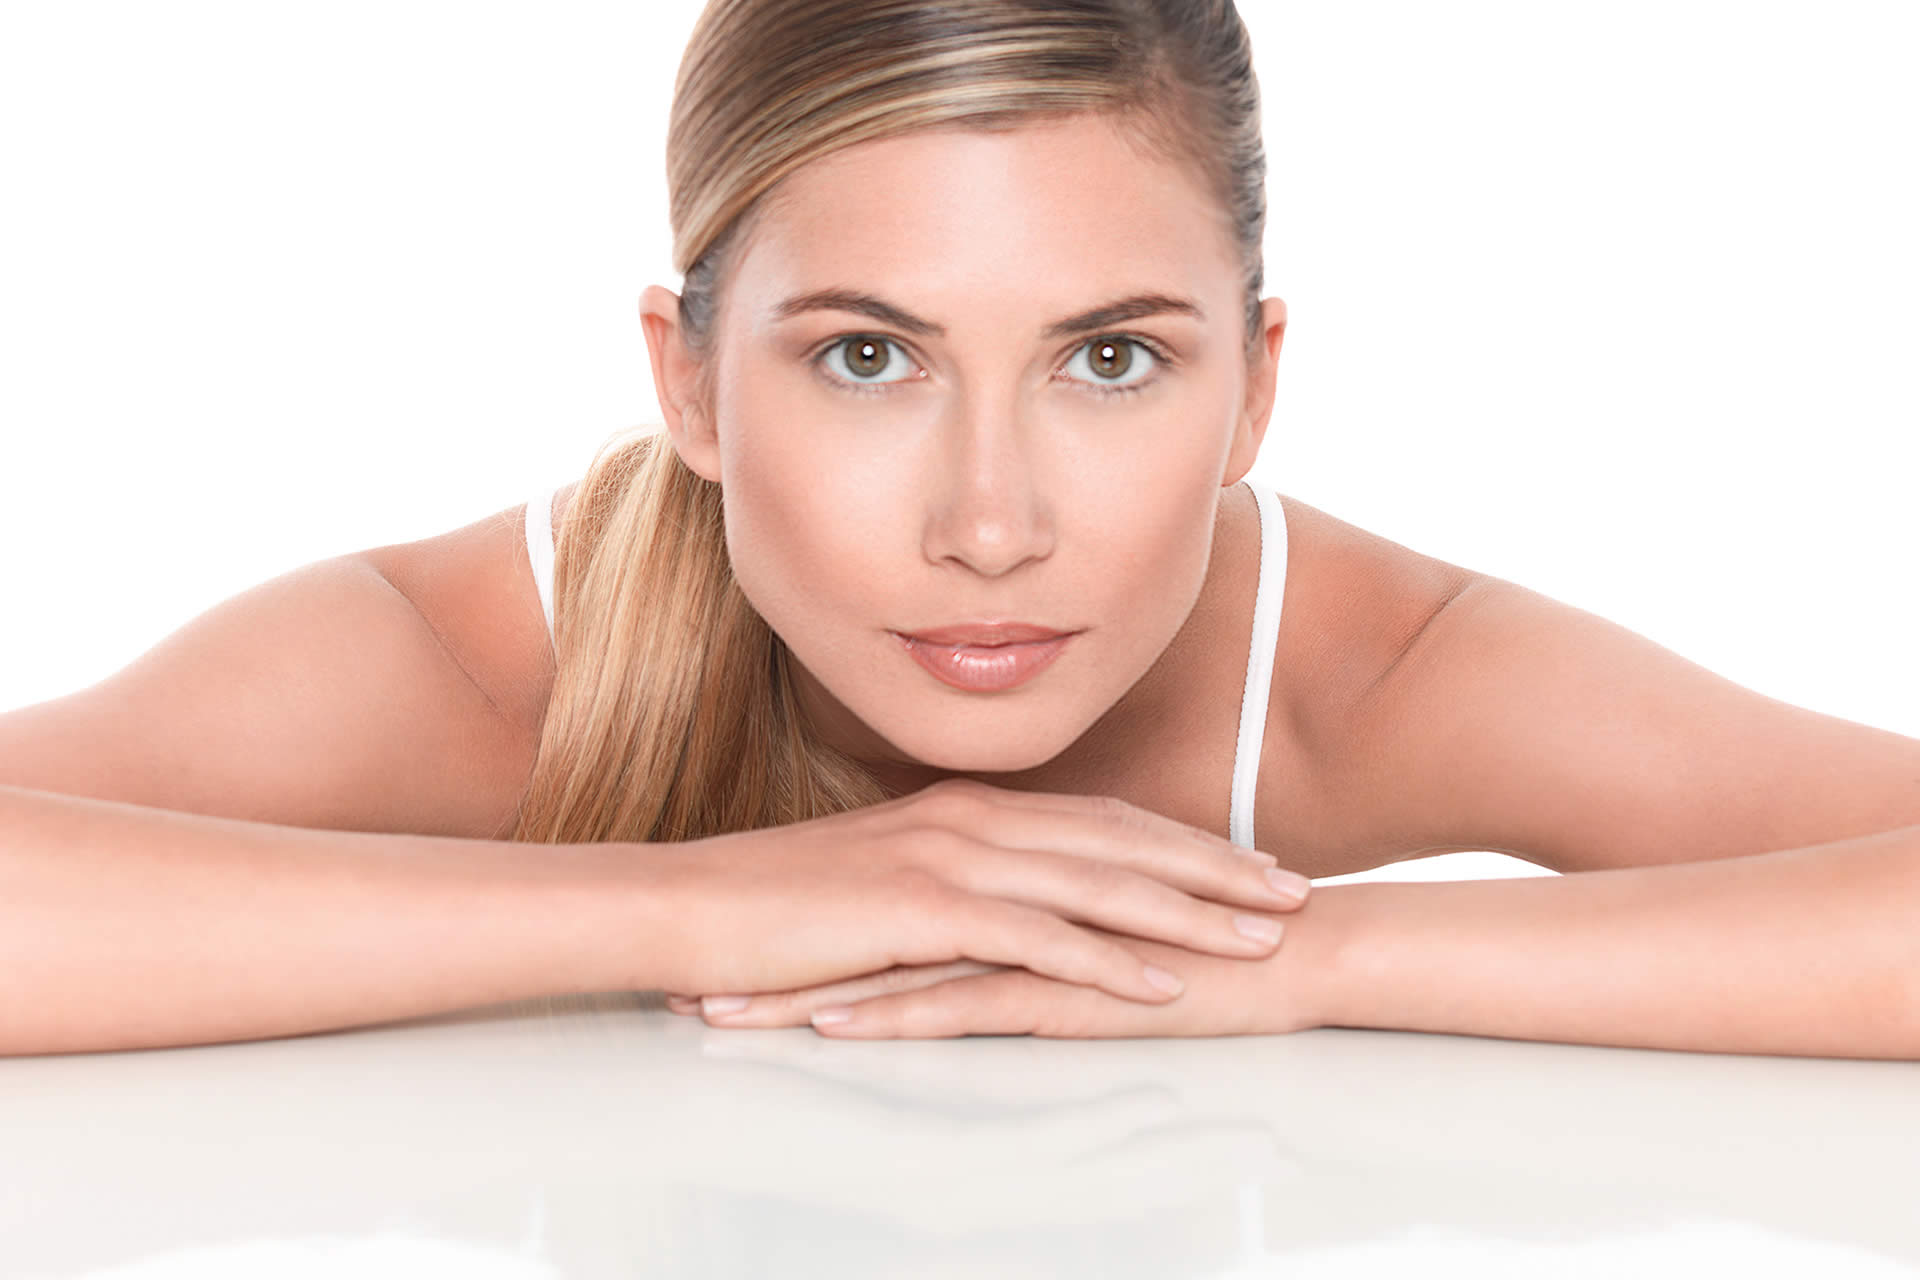 All Treatments at Daydreams Skin and Body Therapy